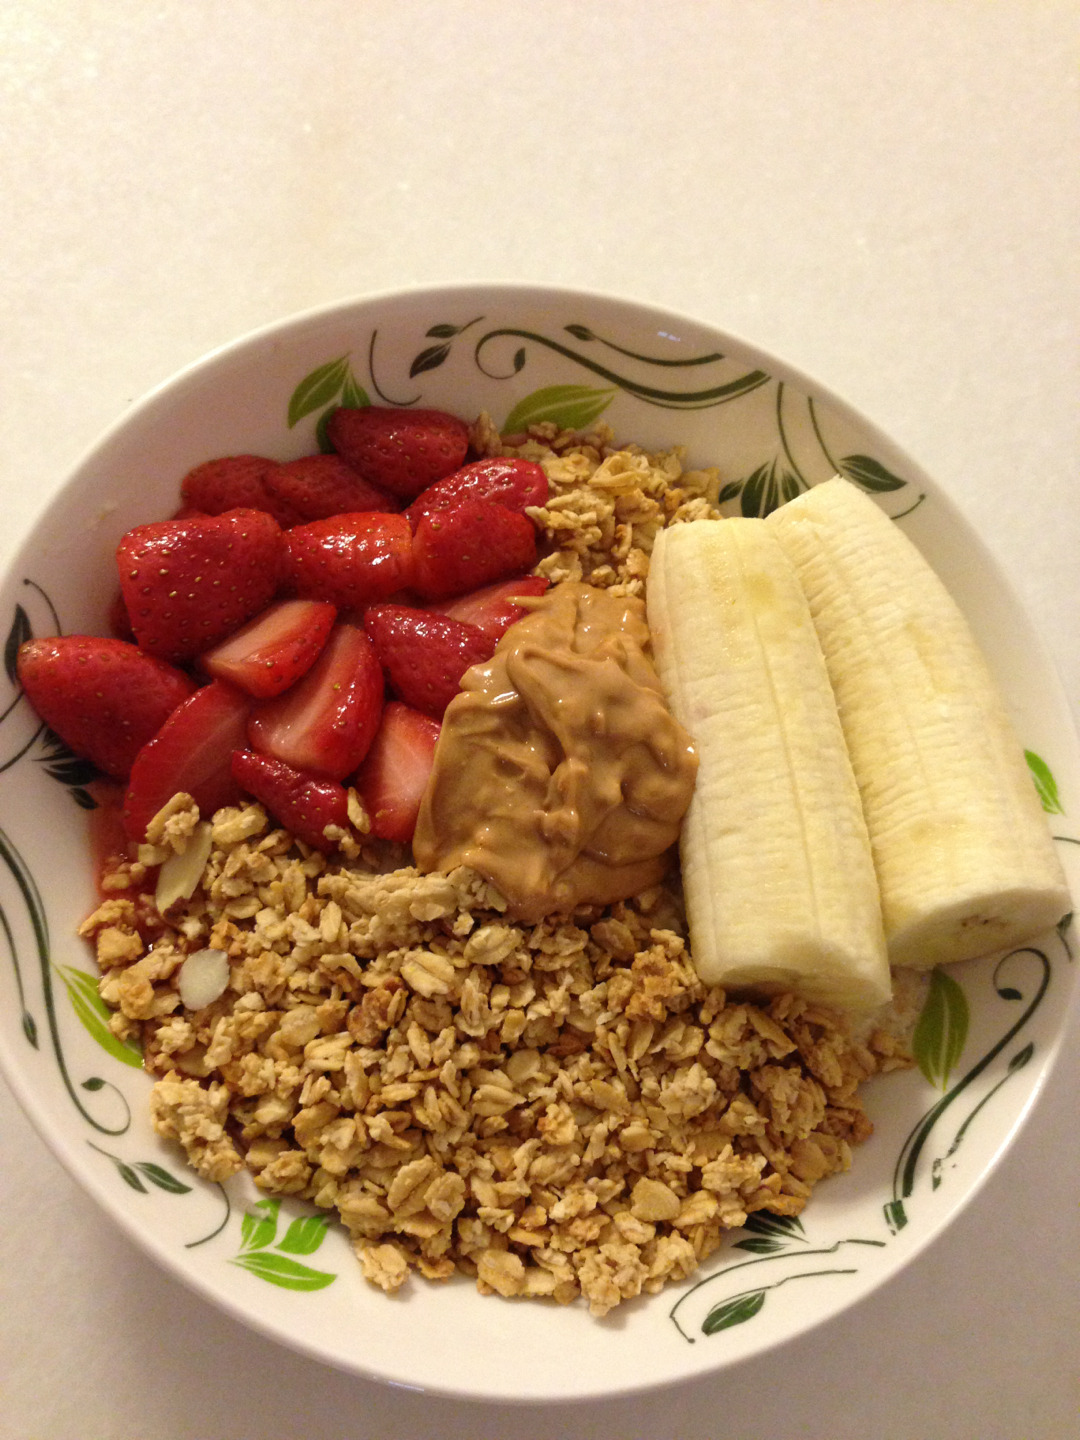 Oatmeal constituting warmed strawberries, banana, honey nut crunch granola and melted peanut butter. :) Yummmm <3